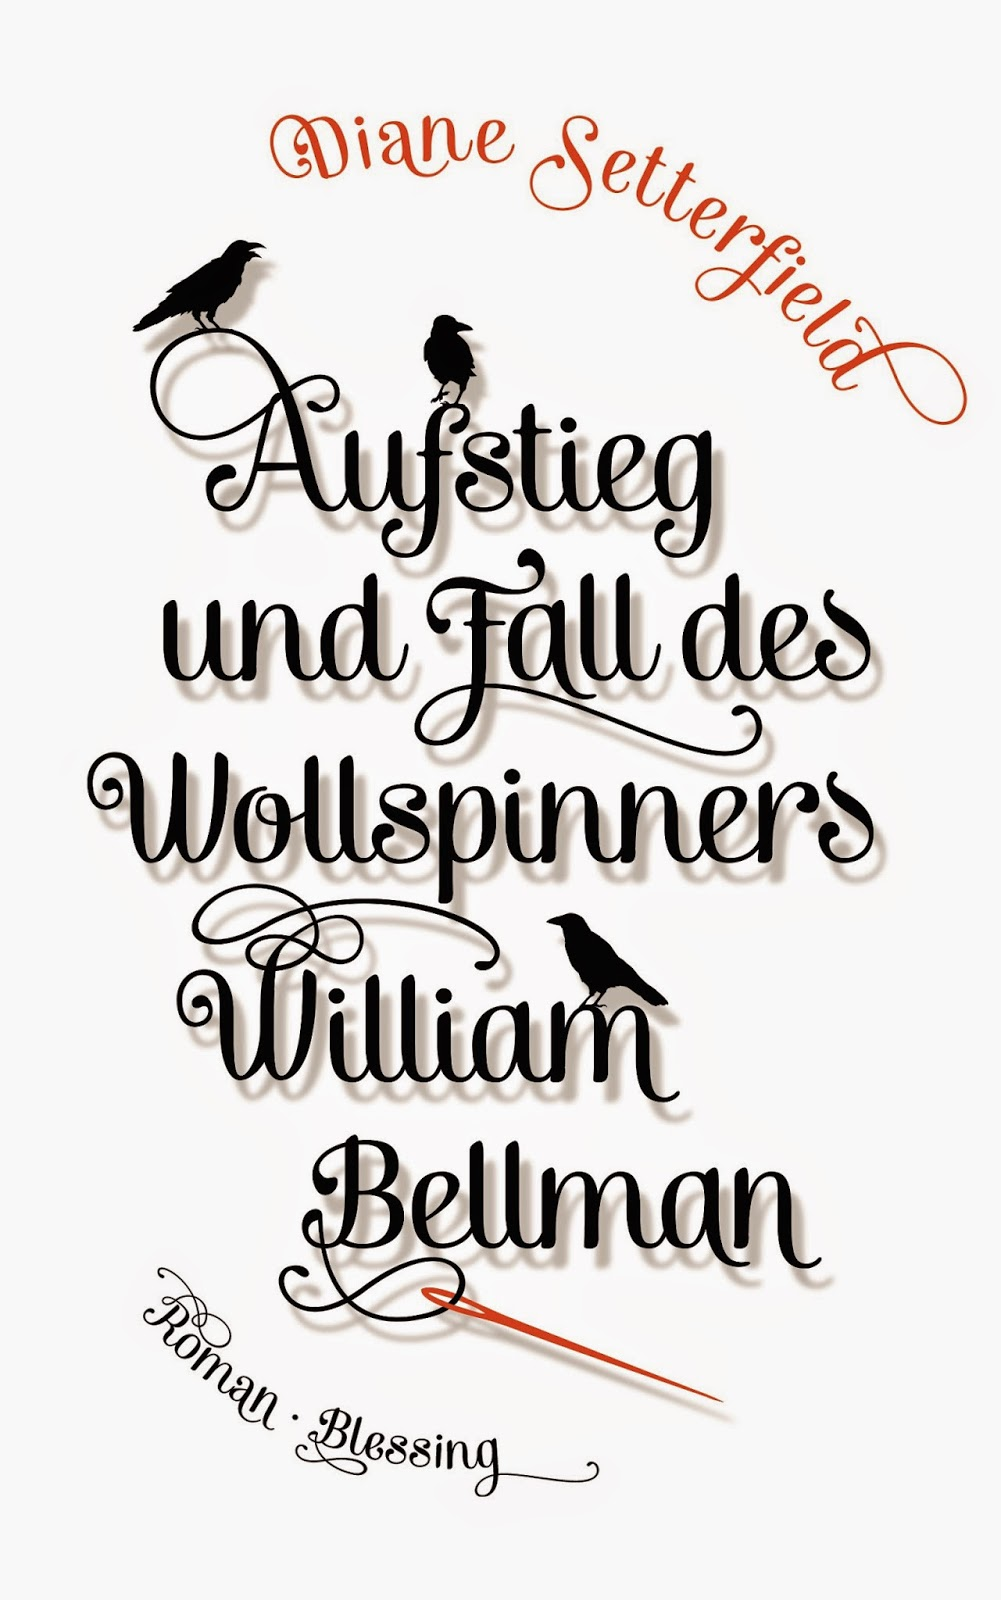 http://www.amazon.de/Aufstieg-Fall-Wollspinners-William-Bellman/dp/3896675257/ref=sr_1_1_twi_2?ie=UTF8&qid=1414771501&sr=8-1&keywords=aufstieg+und+fall+des+wollspinners+william+bellman